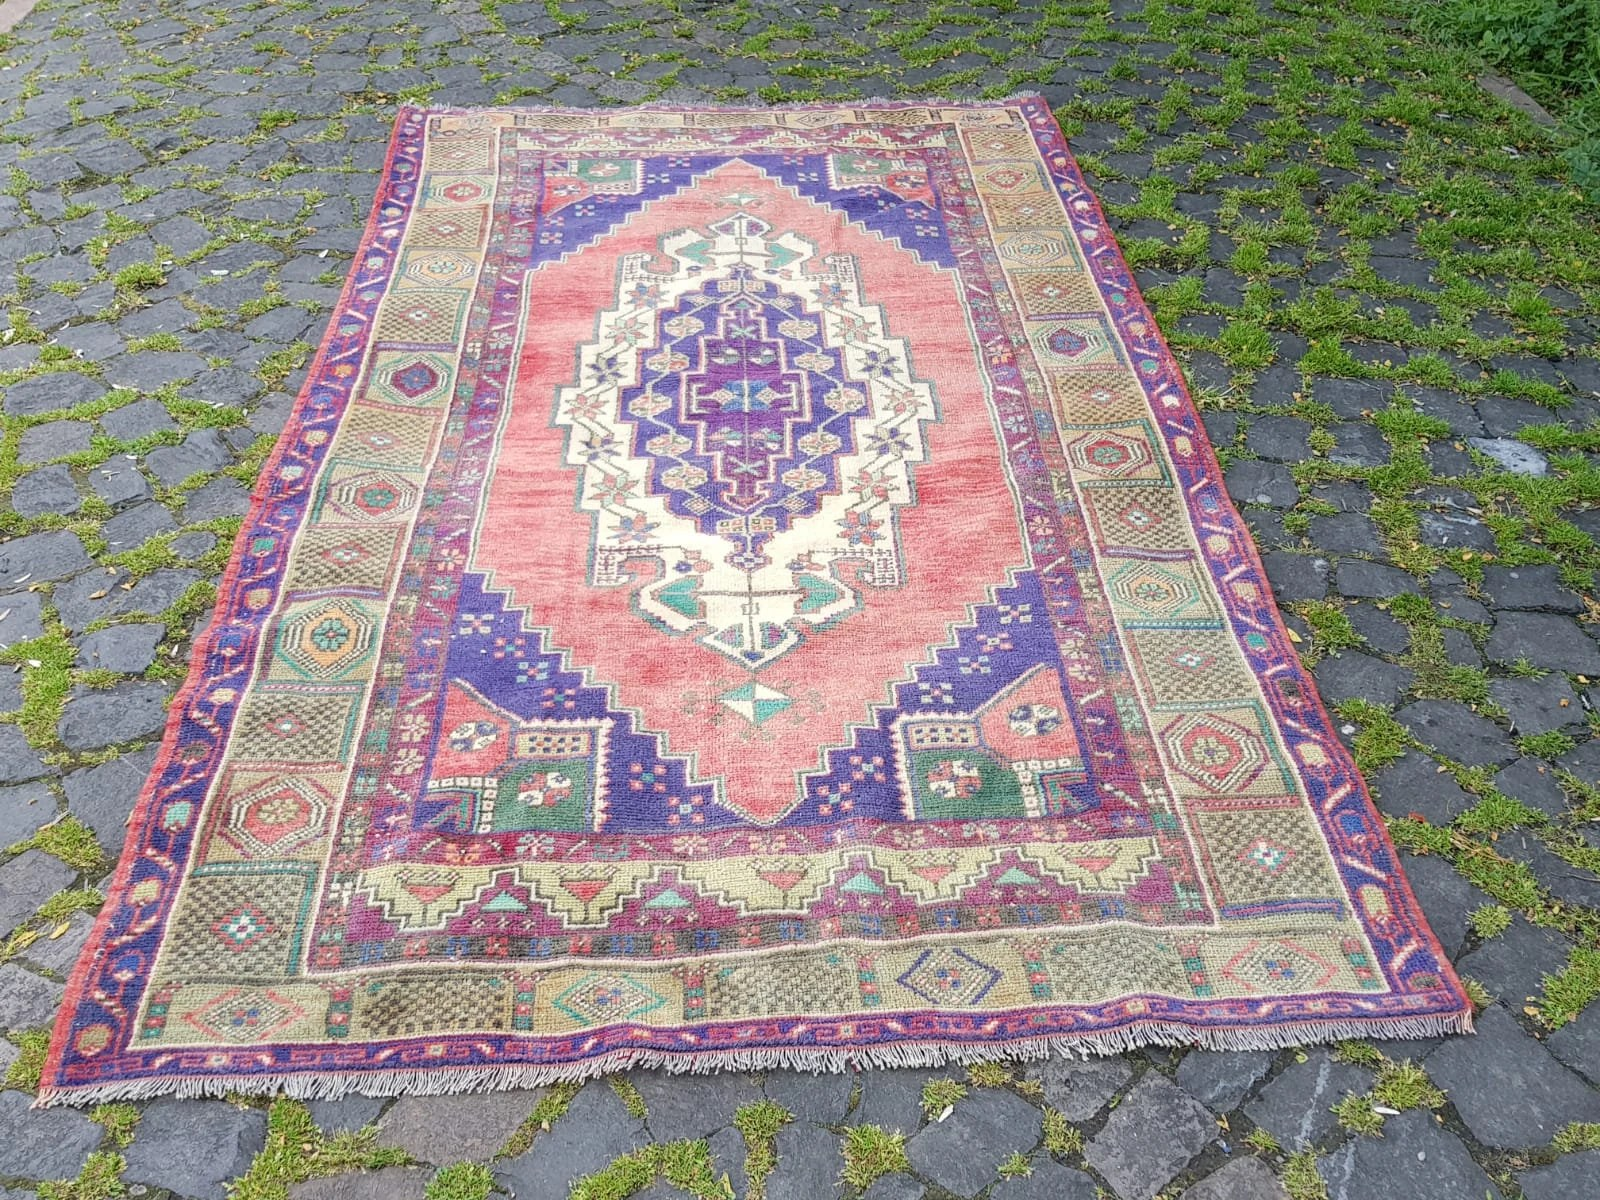 My Home Teppich Turkish Rug Pink Rug Vintage Rug Teppich Turkish Decorative Home Floor Rug Carpet Free Shipping 87x49 Inches Runner Rug